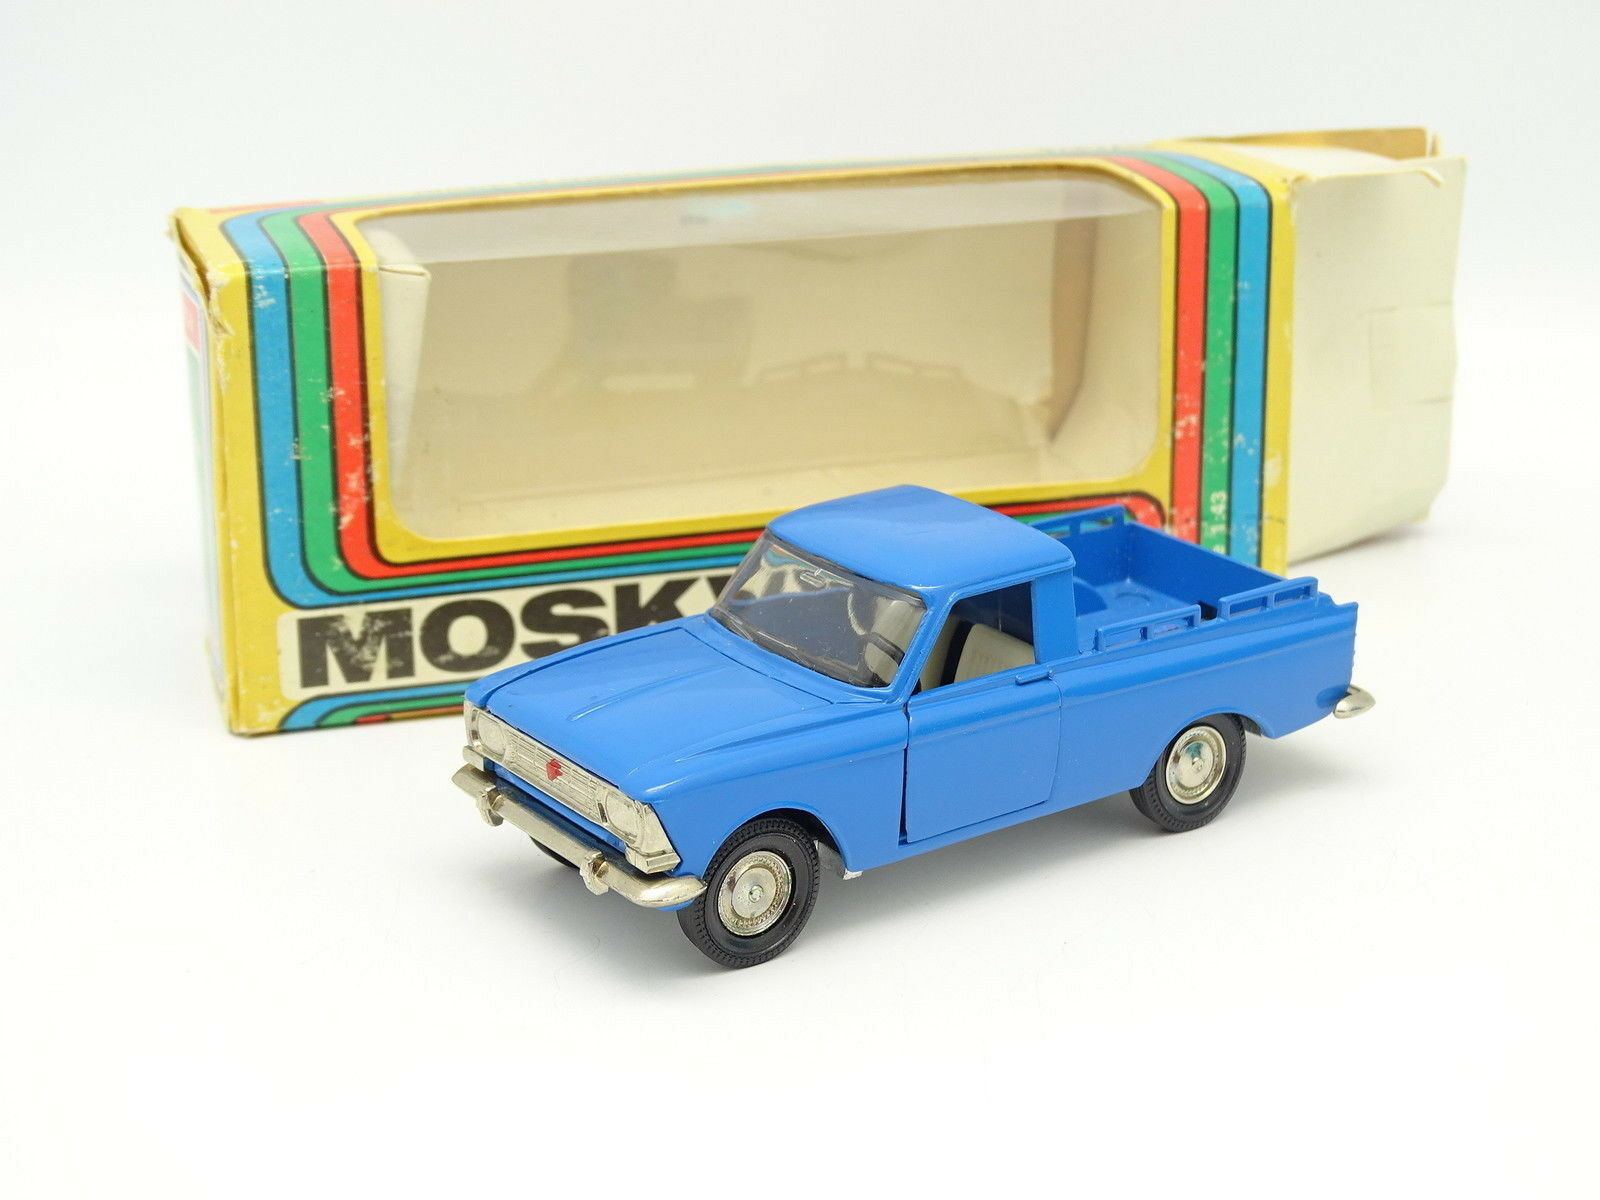 USSR Saratov 1 43 - Moskvitch Pick up A19 bluee